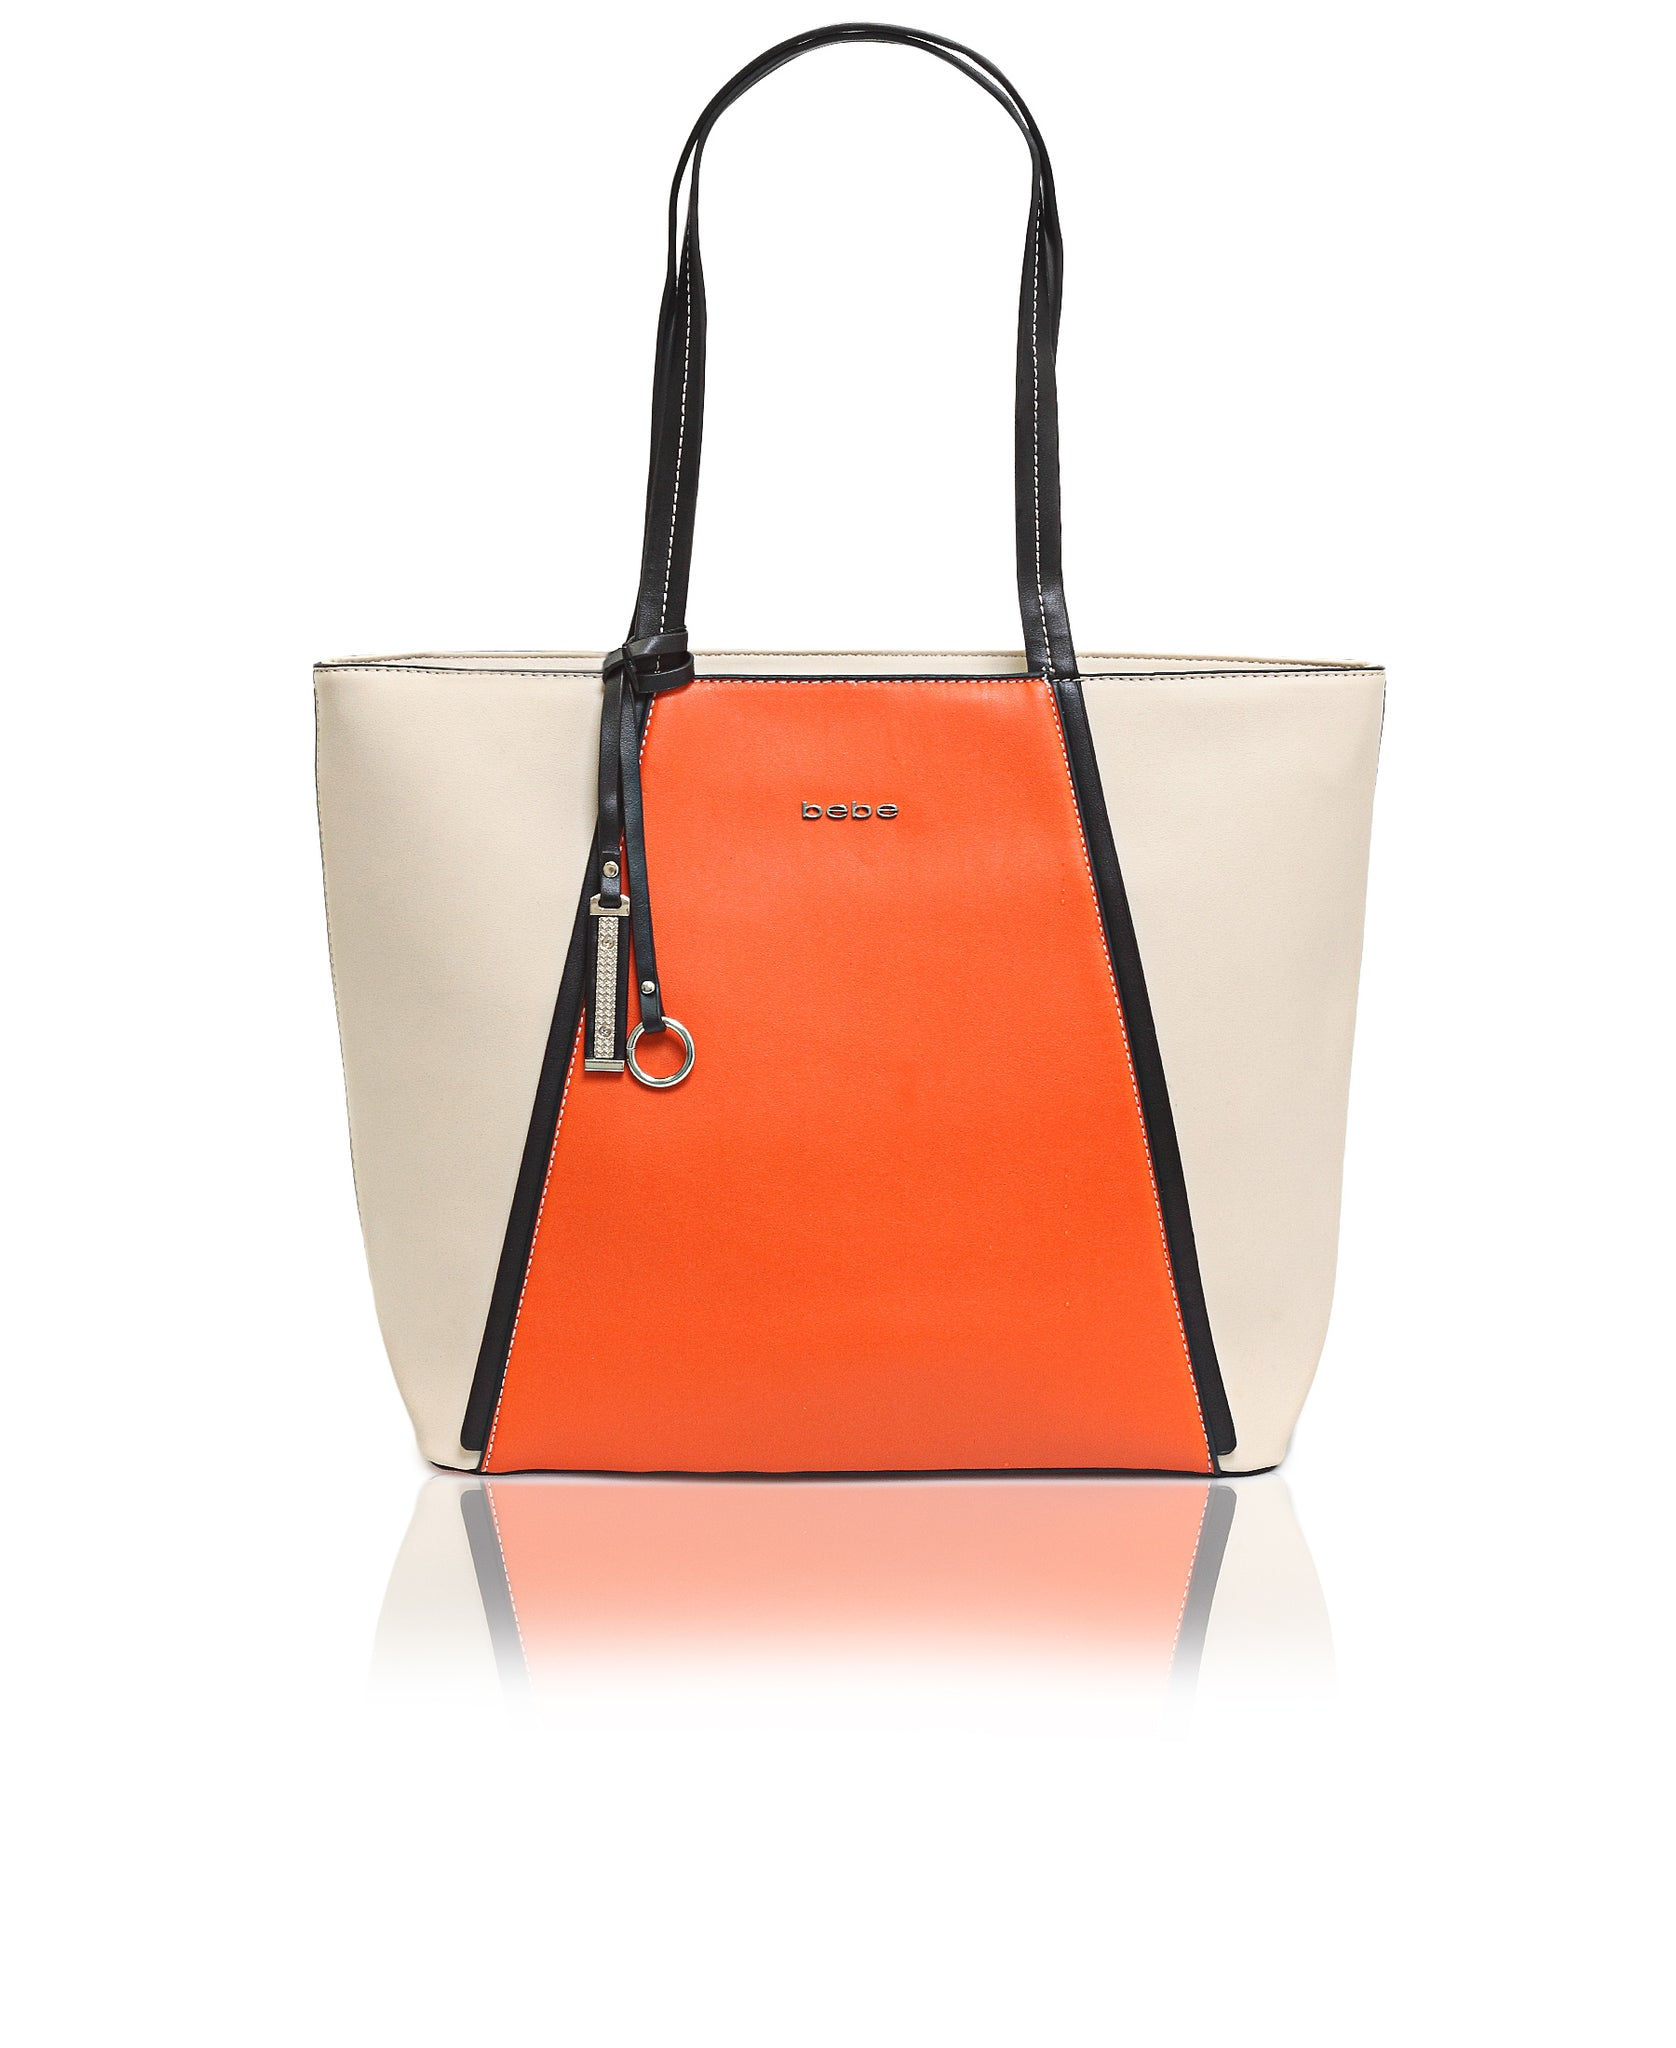 Shopper Bag - Orange